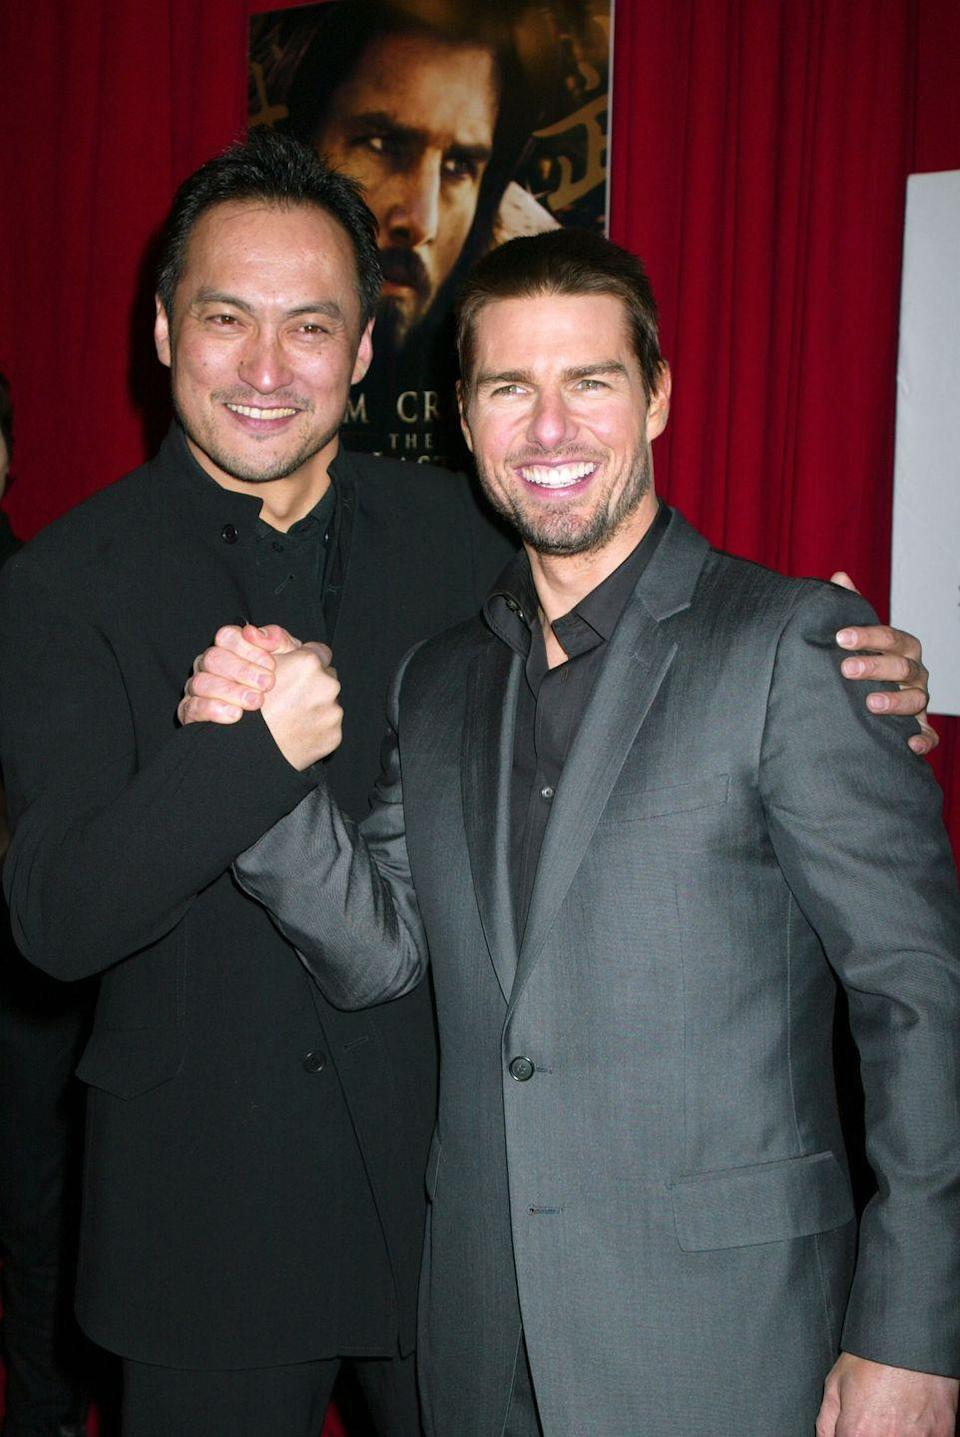 <p>Ken Wantanabe and Tom Cruise during <em>The Last Samurai </em>New York Premiere on Dec. 2, 2003.</p>